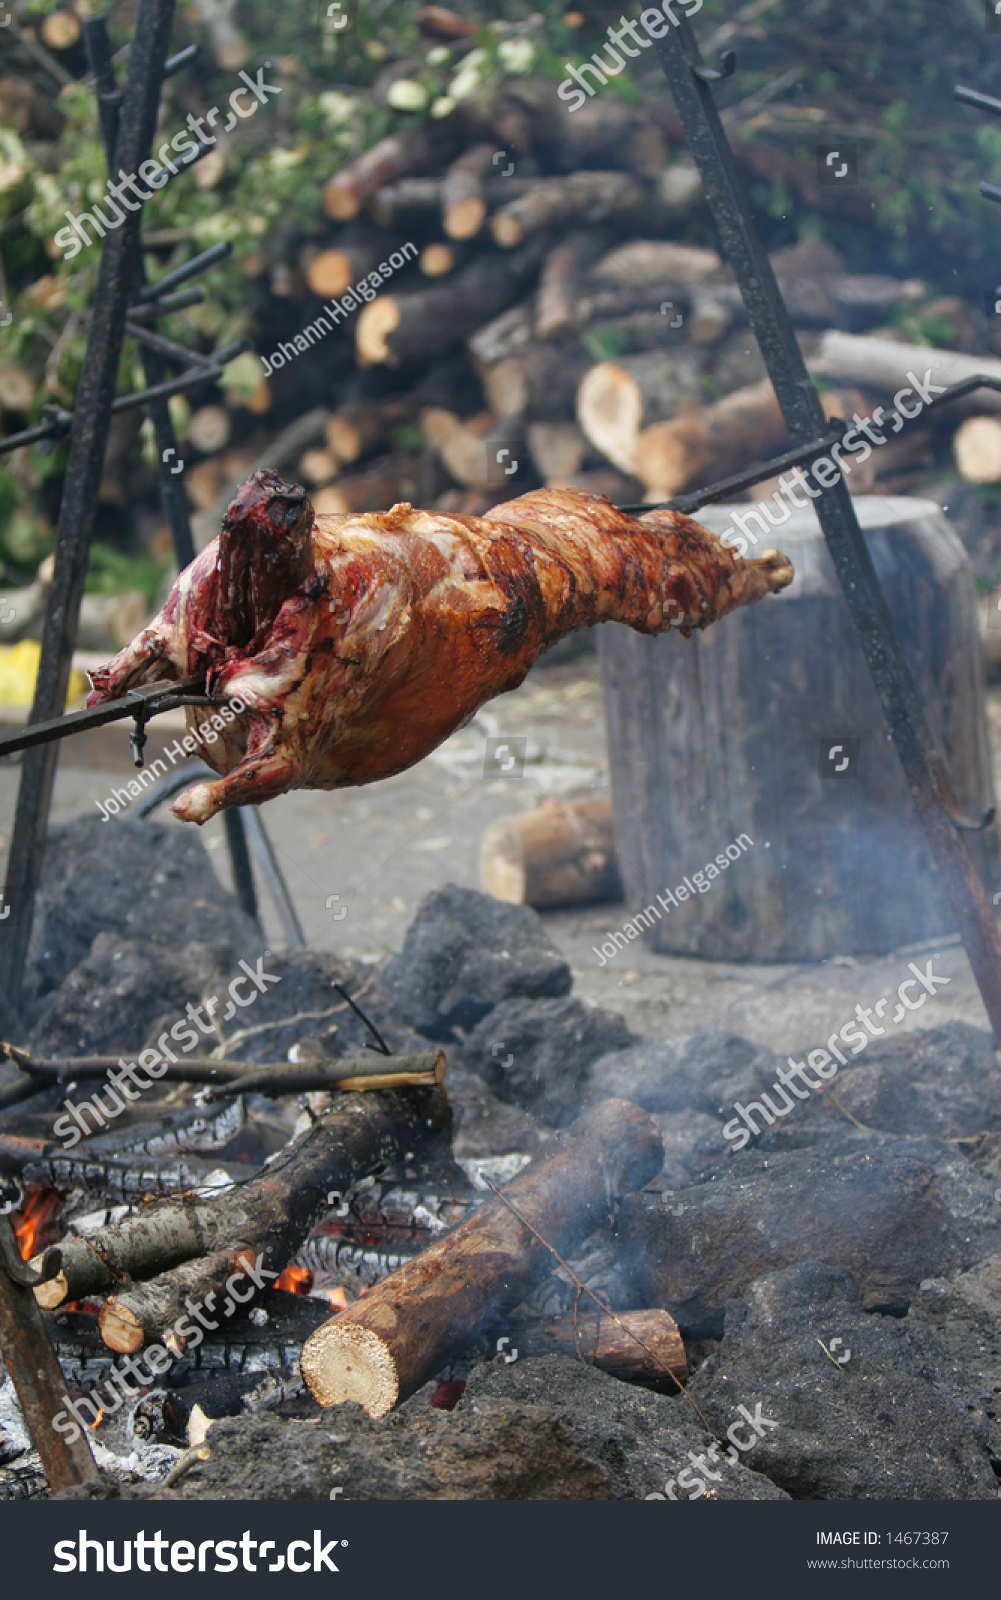 lamb being roasted whole on spit stock photo 1467387